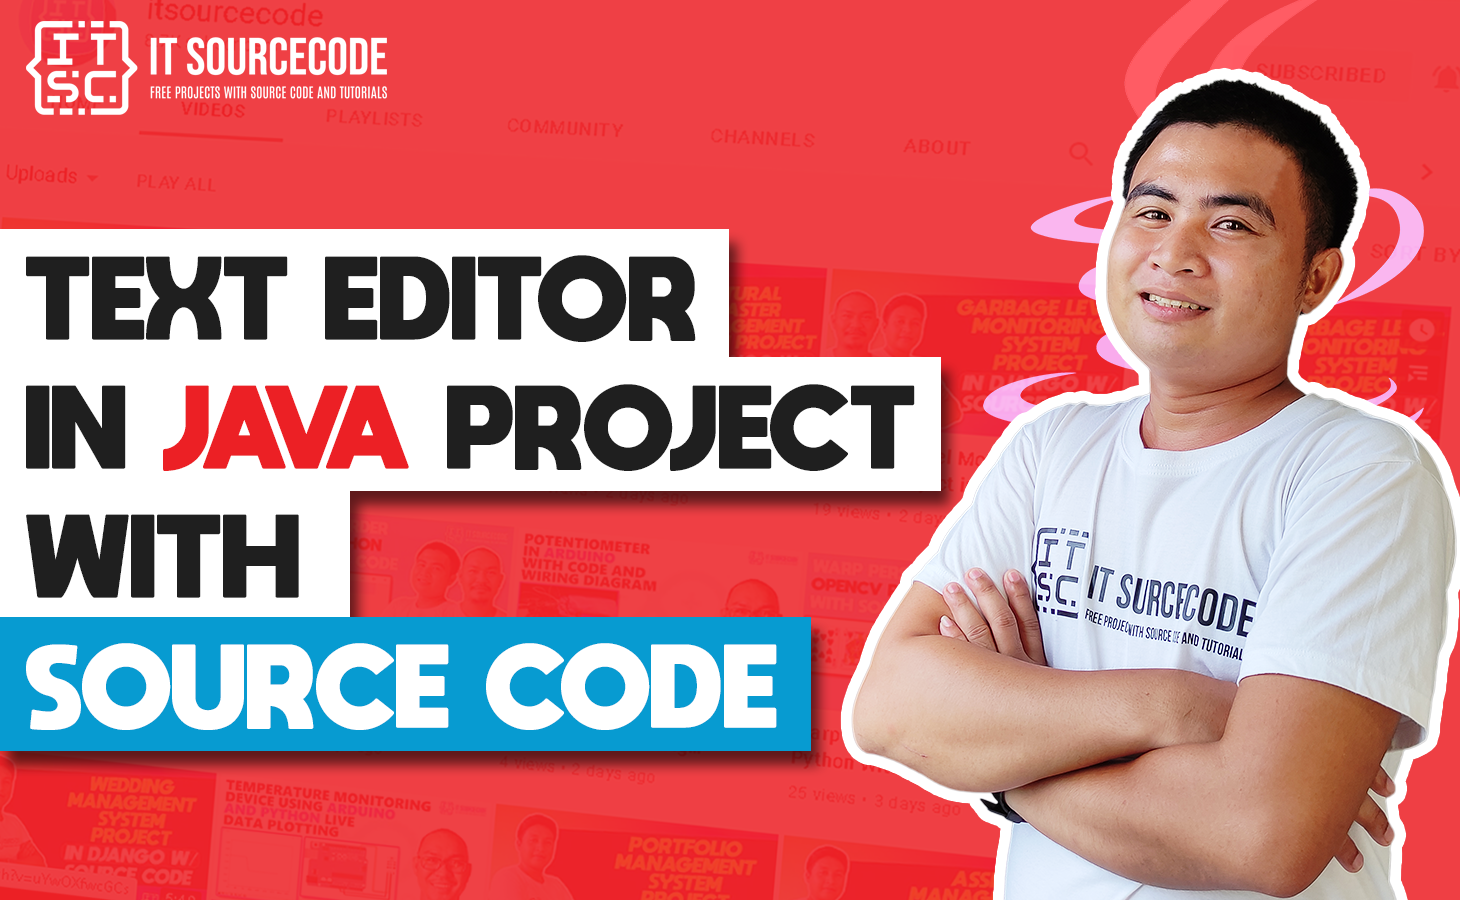 Text Editor In Java Project With Source Code